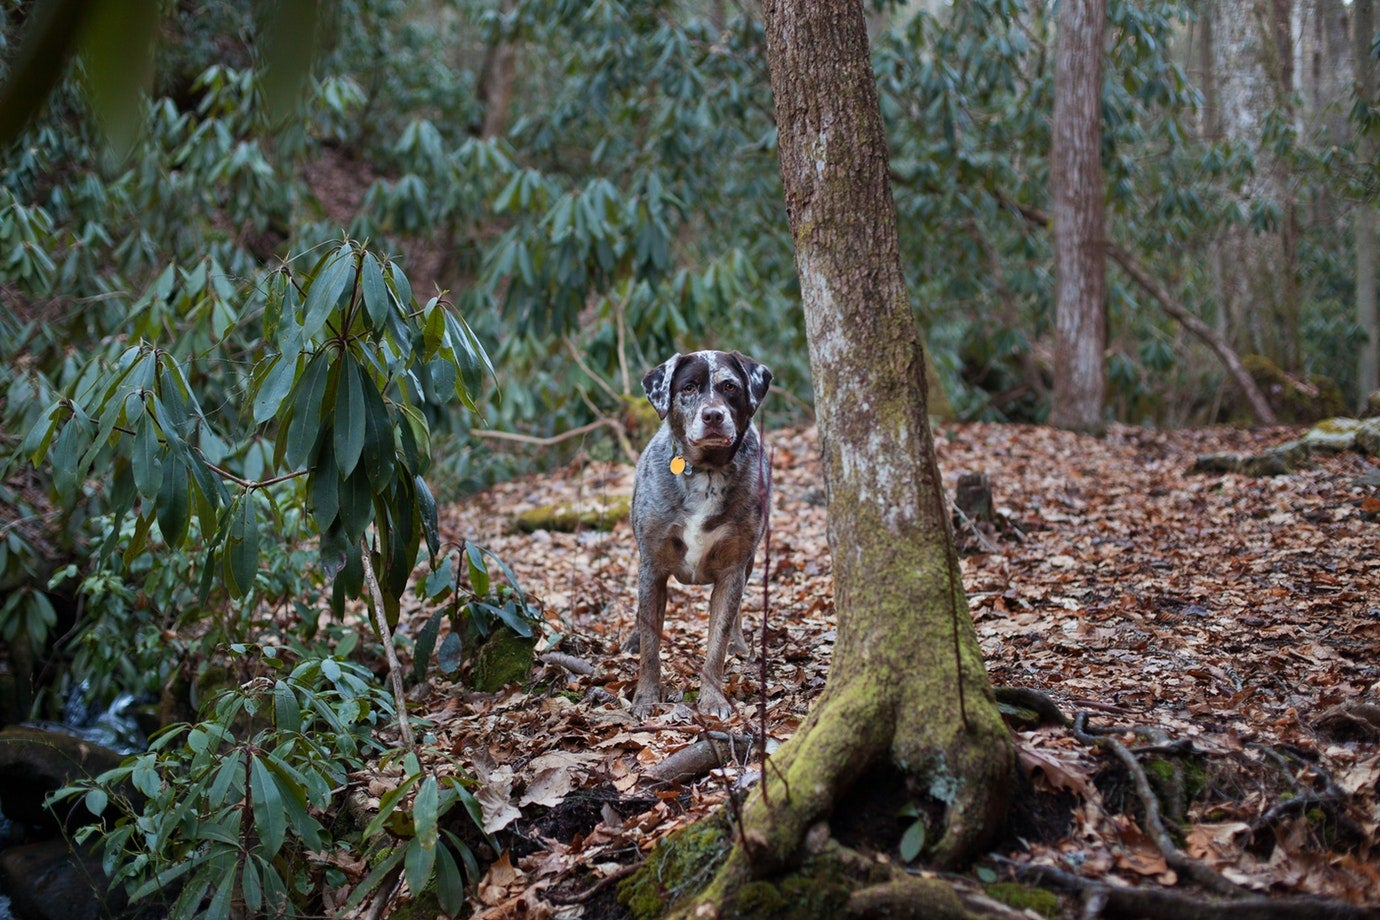 grey spotted dog stands alert in wooded state park